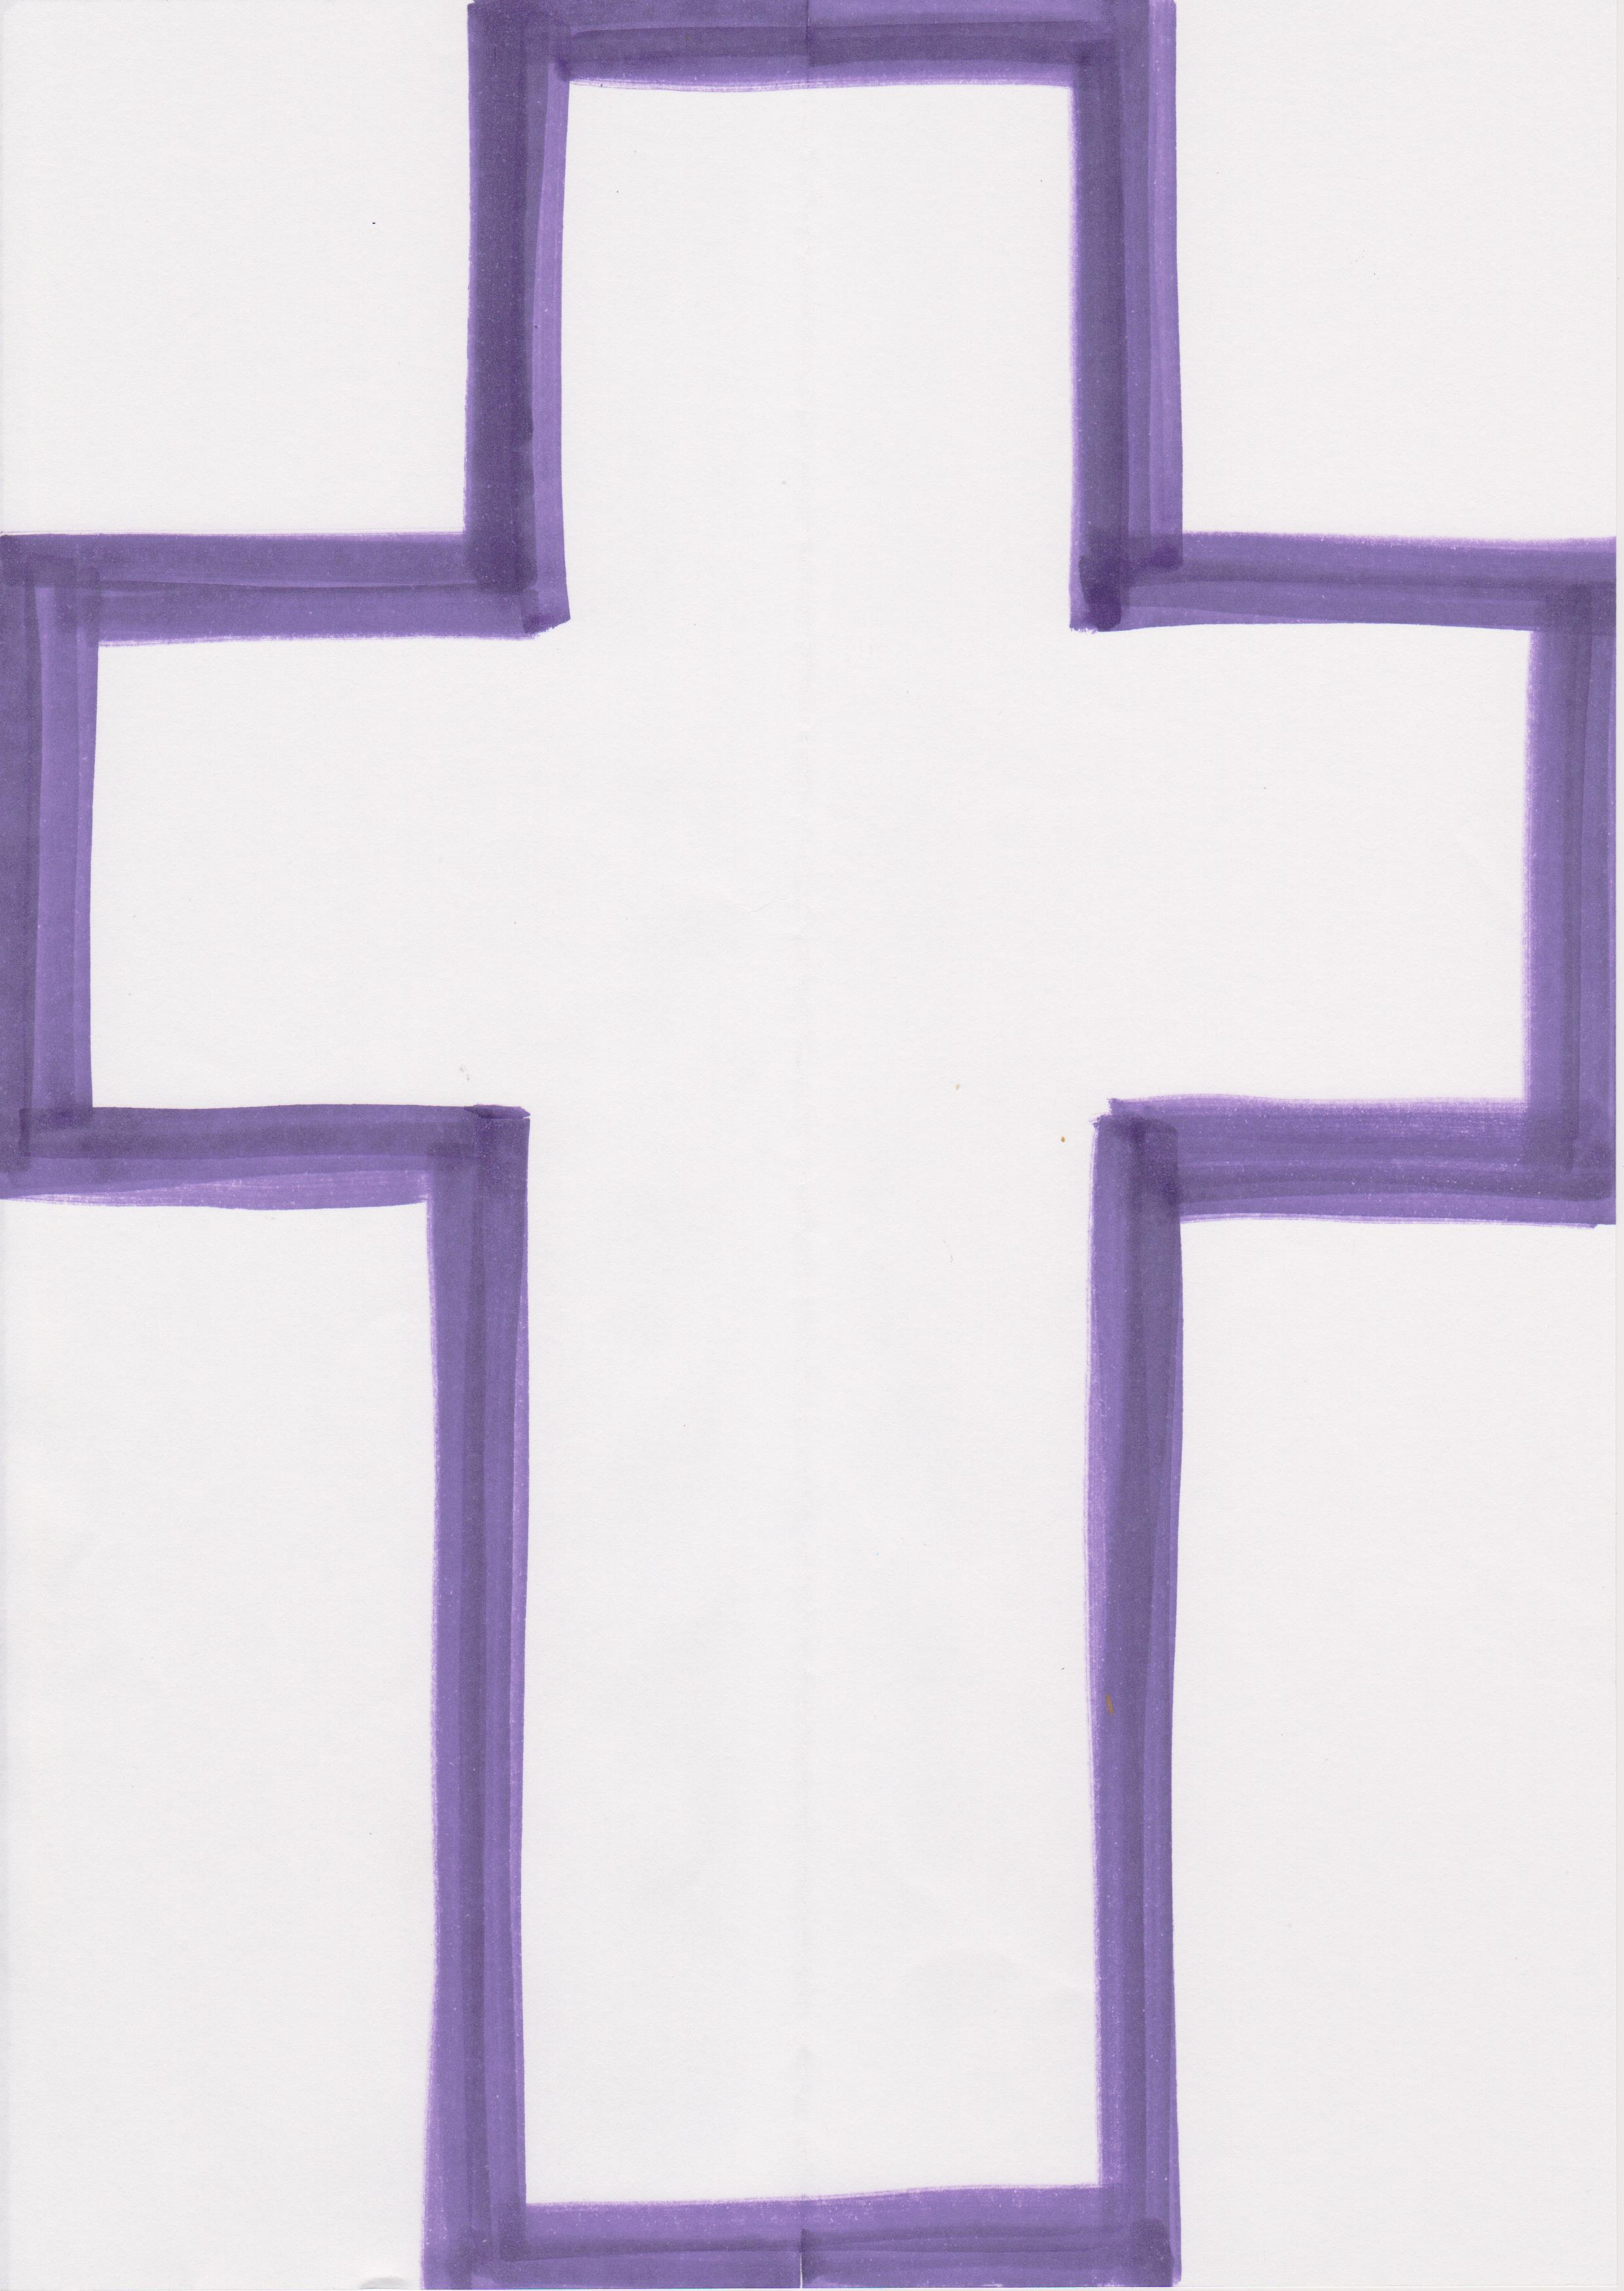 ... cross (preferably on a window) and enjoy this visual reminder of Lent